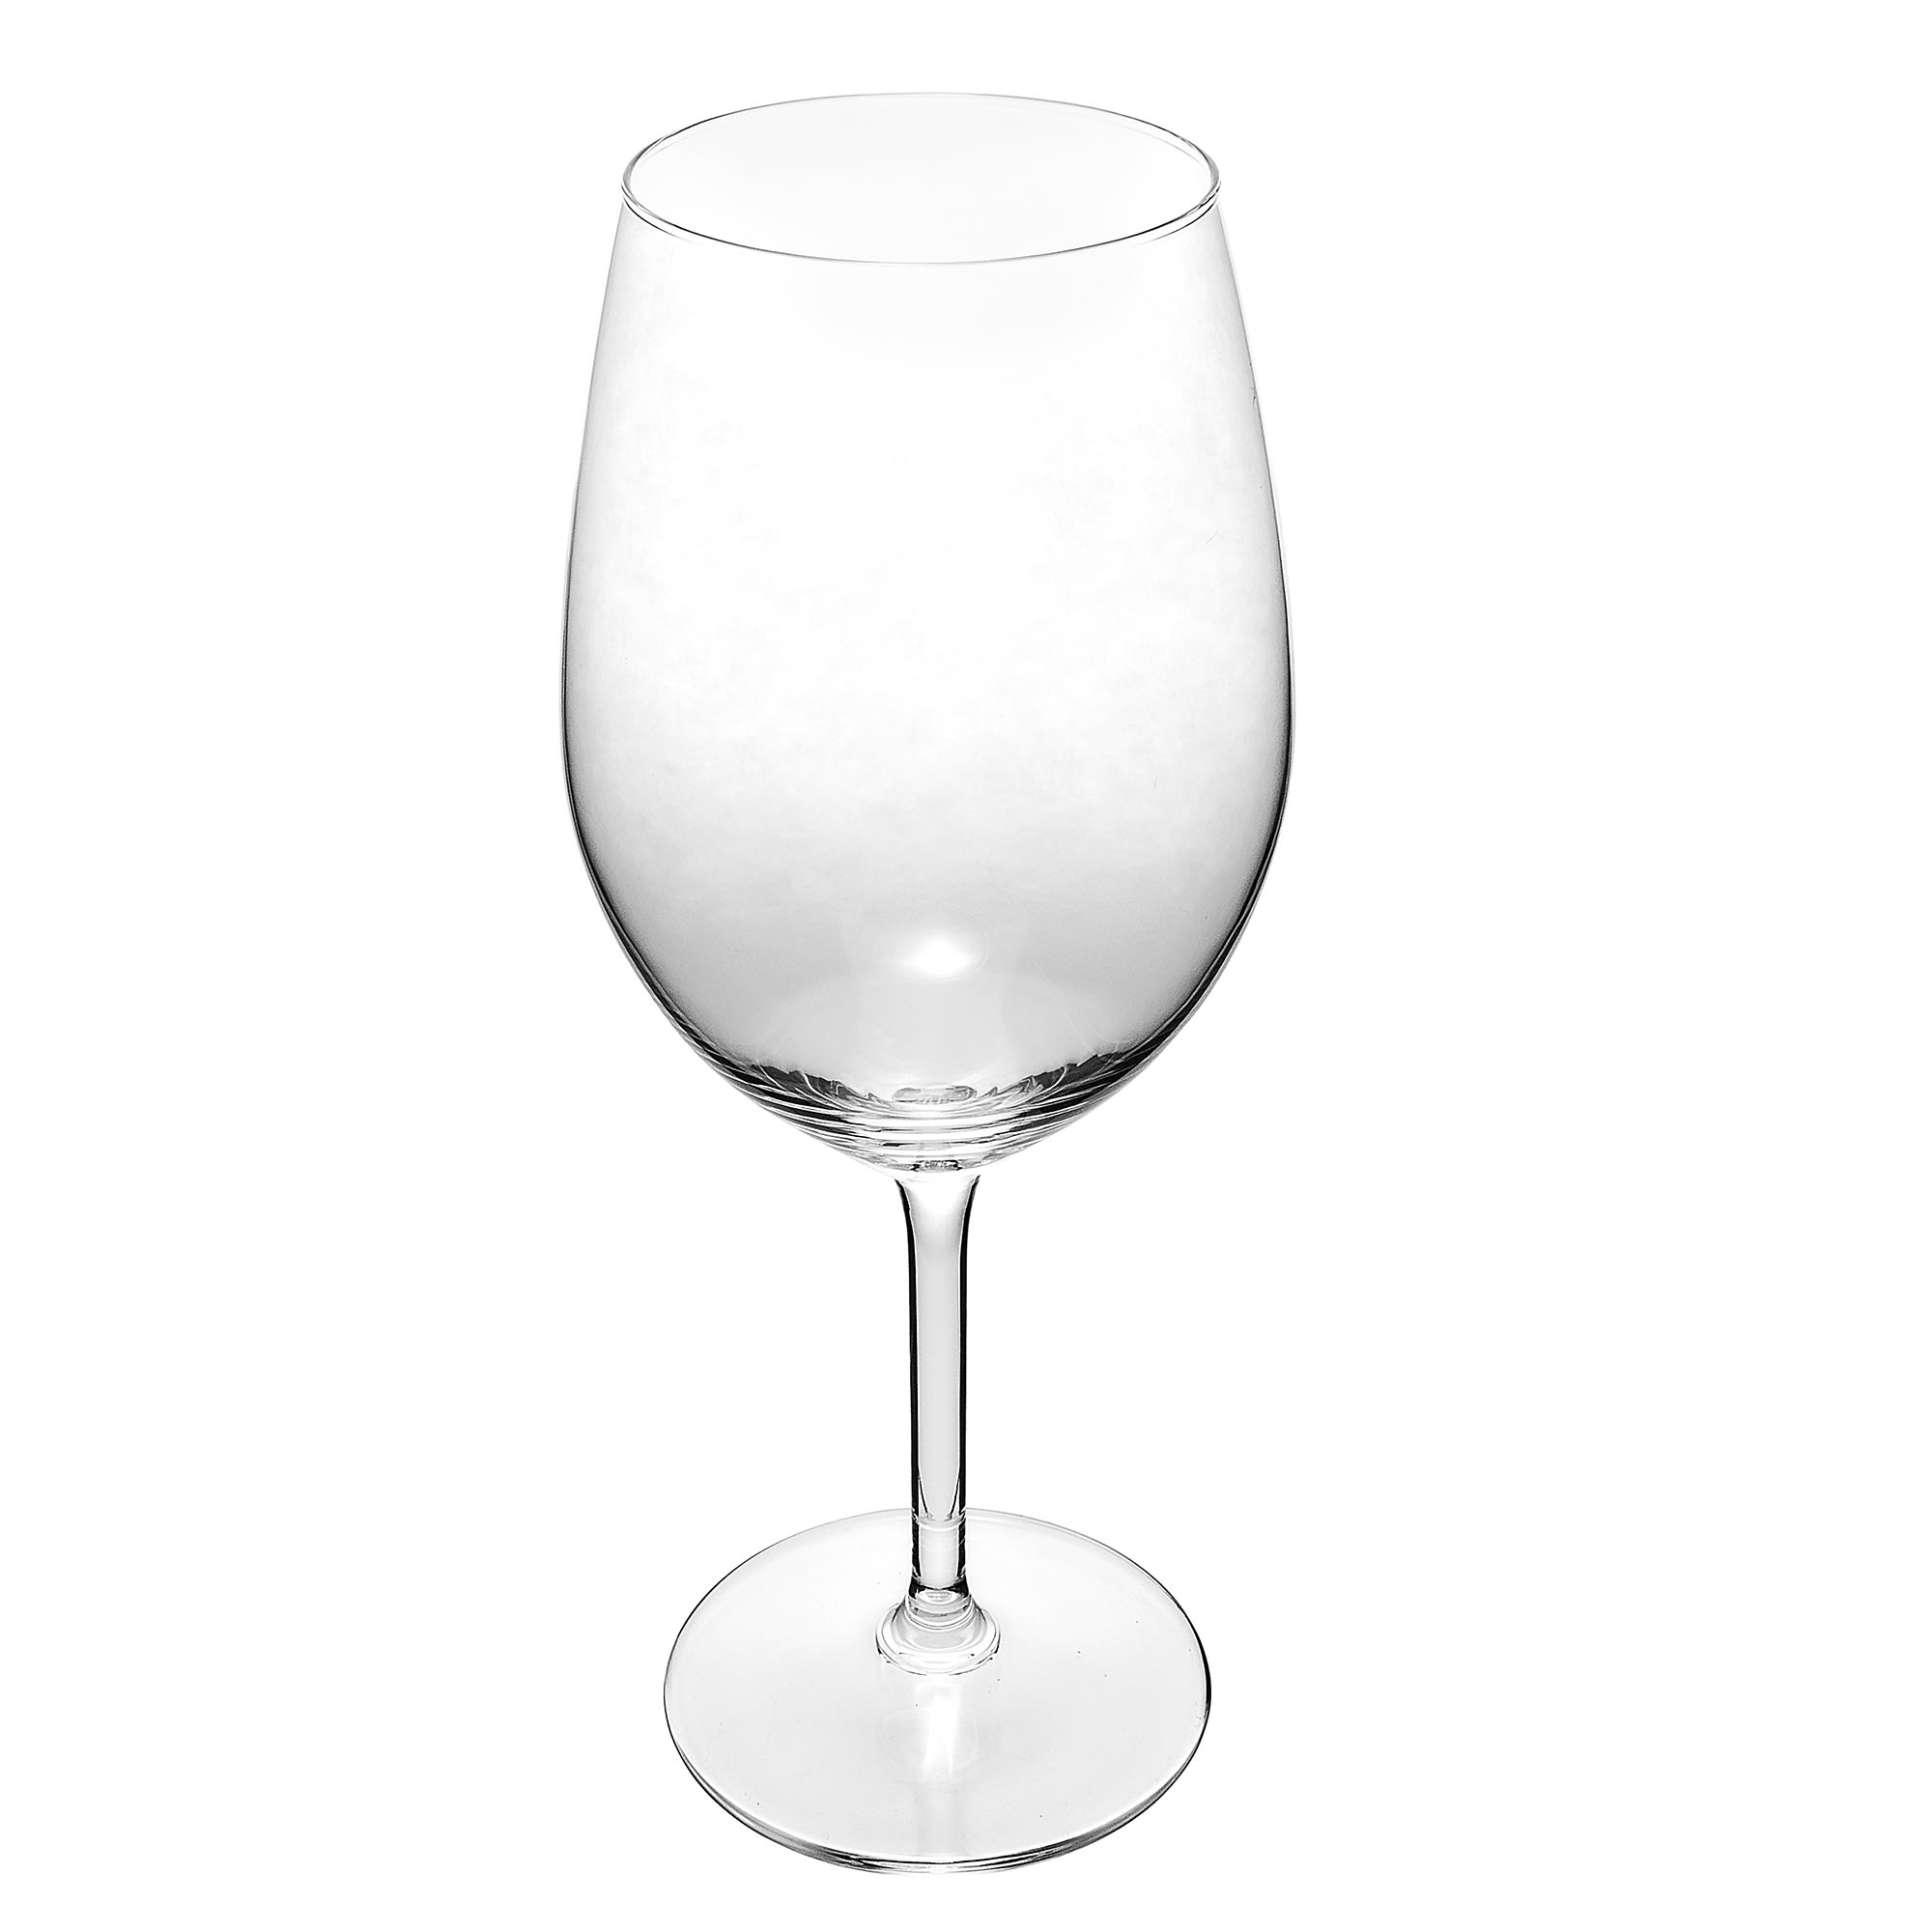 Libbey 9105RL 18 oz Allure Royal Leerdam Wine Water Glass